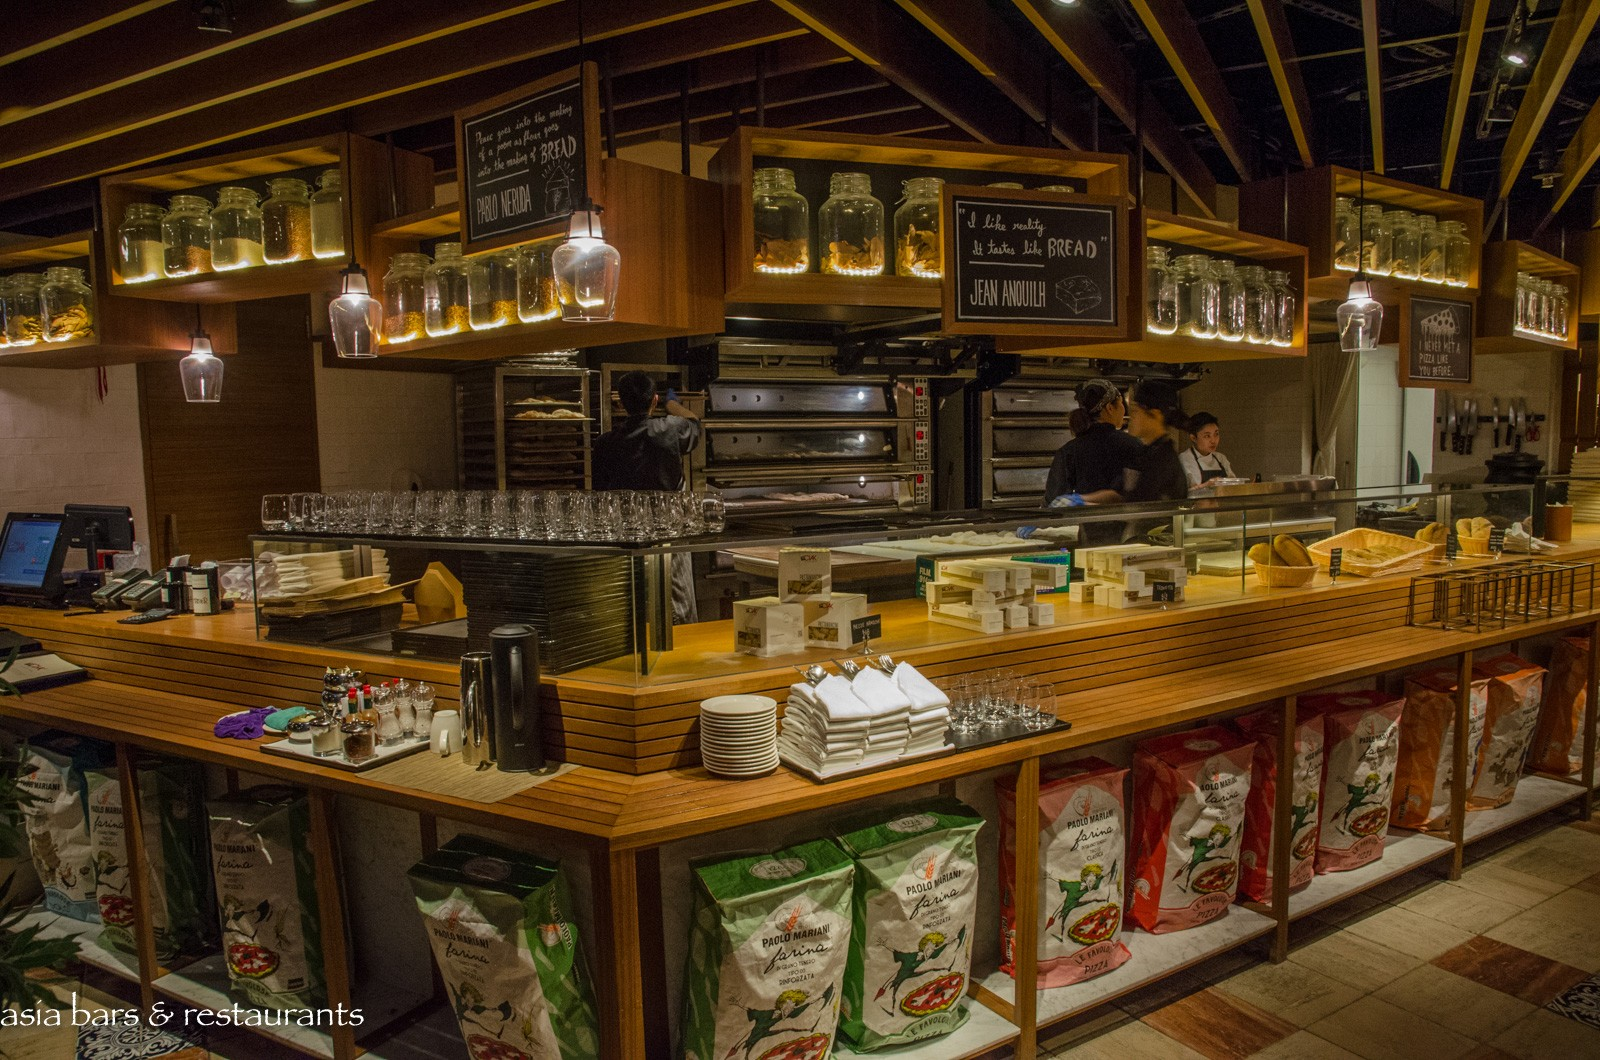 Ciak Kitchen In The City Italian Trattoria Style Restaurant In Hong Kong Asia Bars